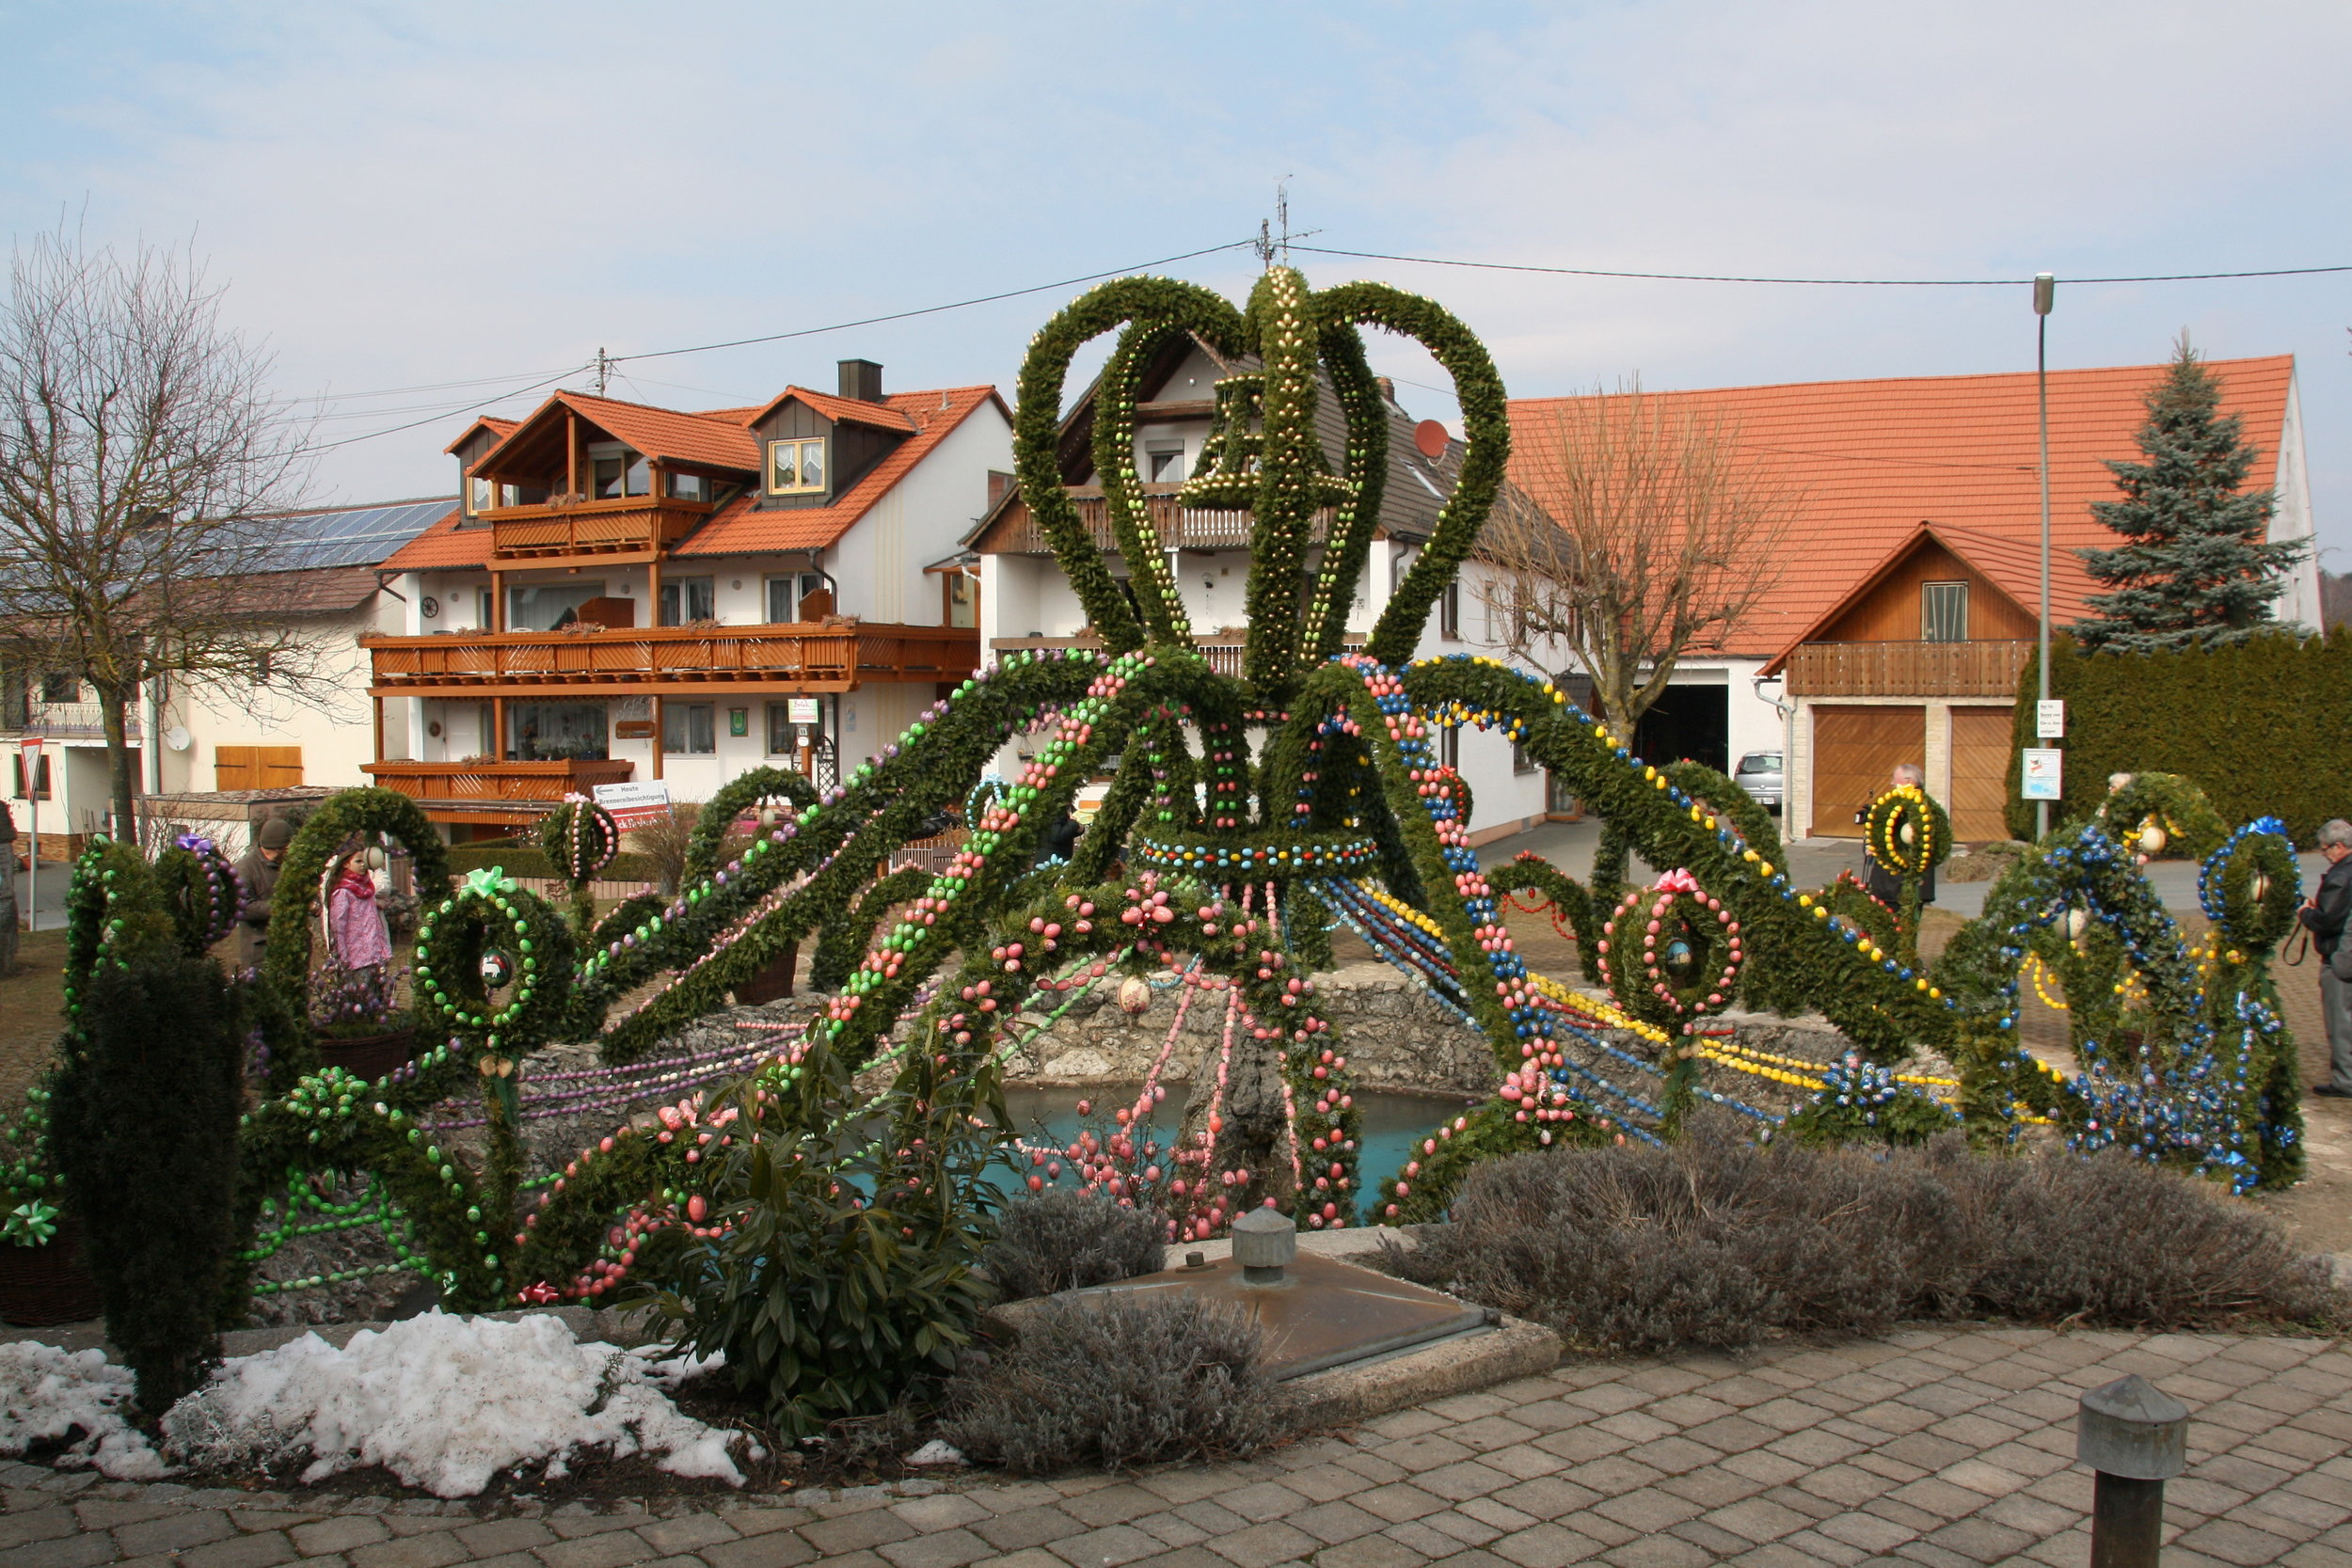 Osterbrunnen Bieberbach By Edbruynzeels (Own work) [CC BY-SA 4.0 (https://creativecommons.org/licenses/by-sa/4.0)], via Wikimedia Commons